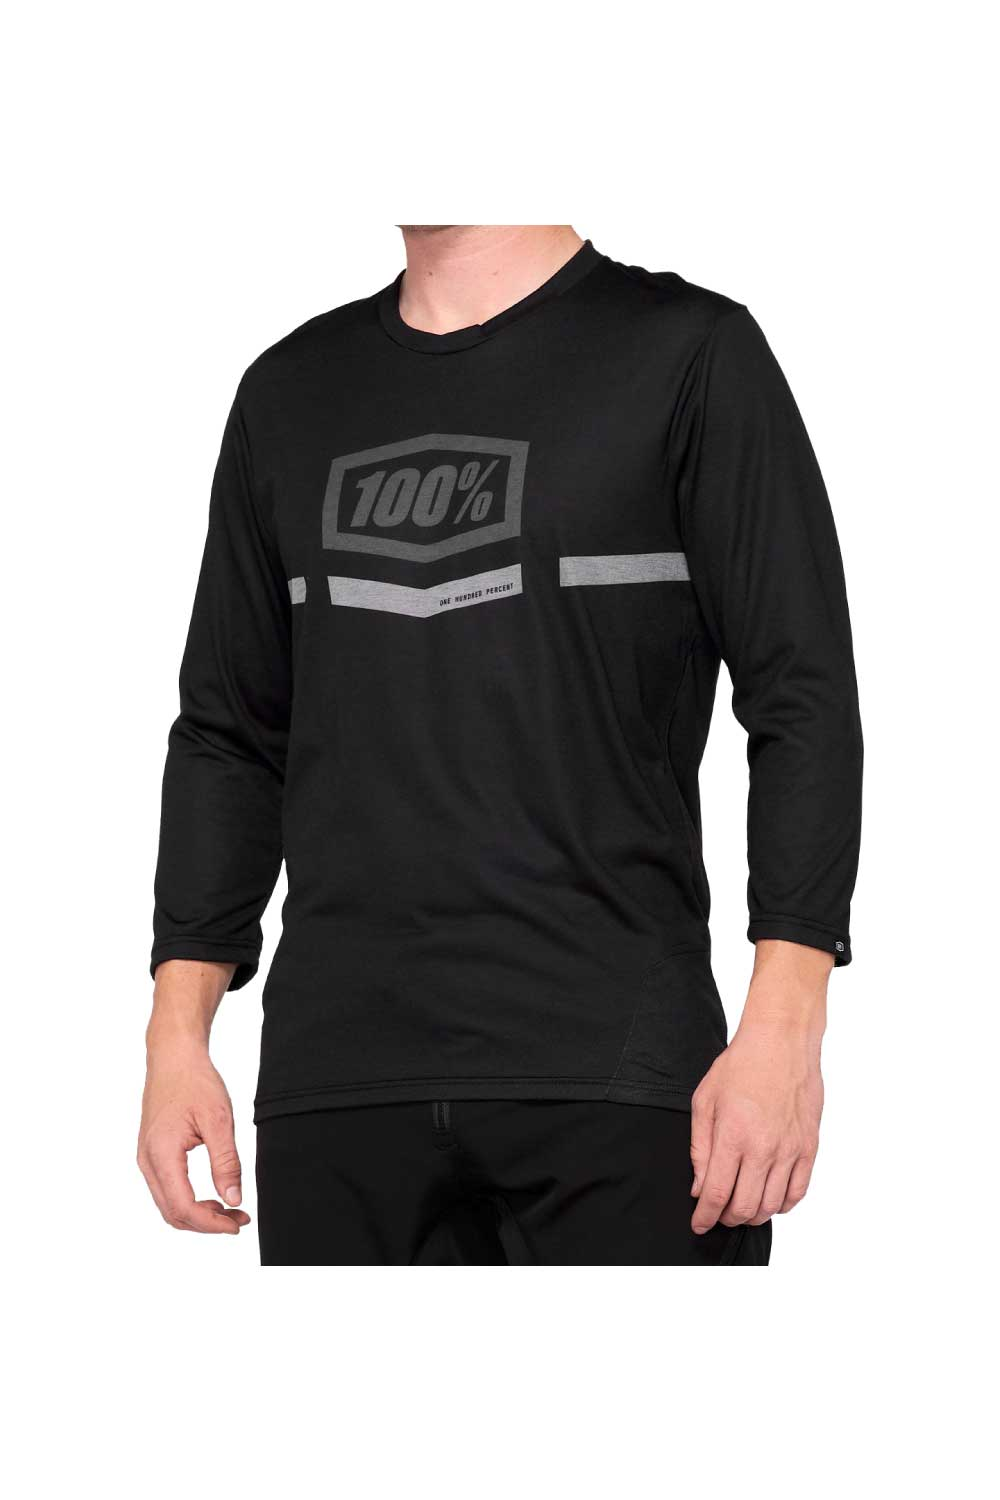 100% AIRMATIC 2020 3/4 Sleeve Jersey Black